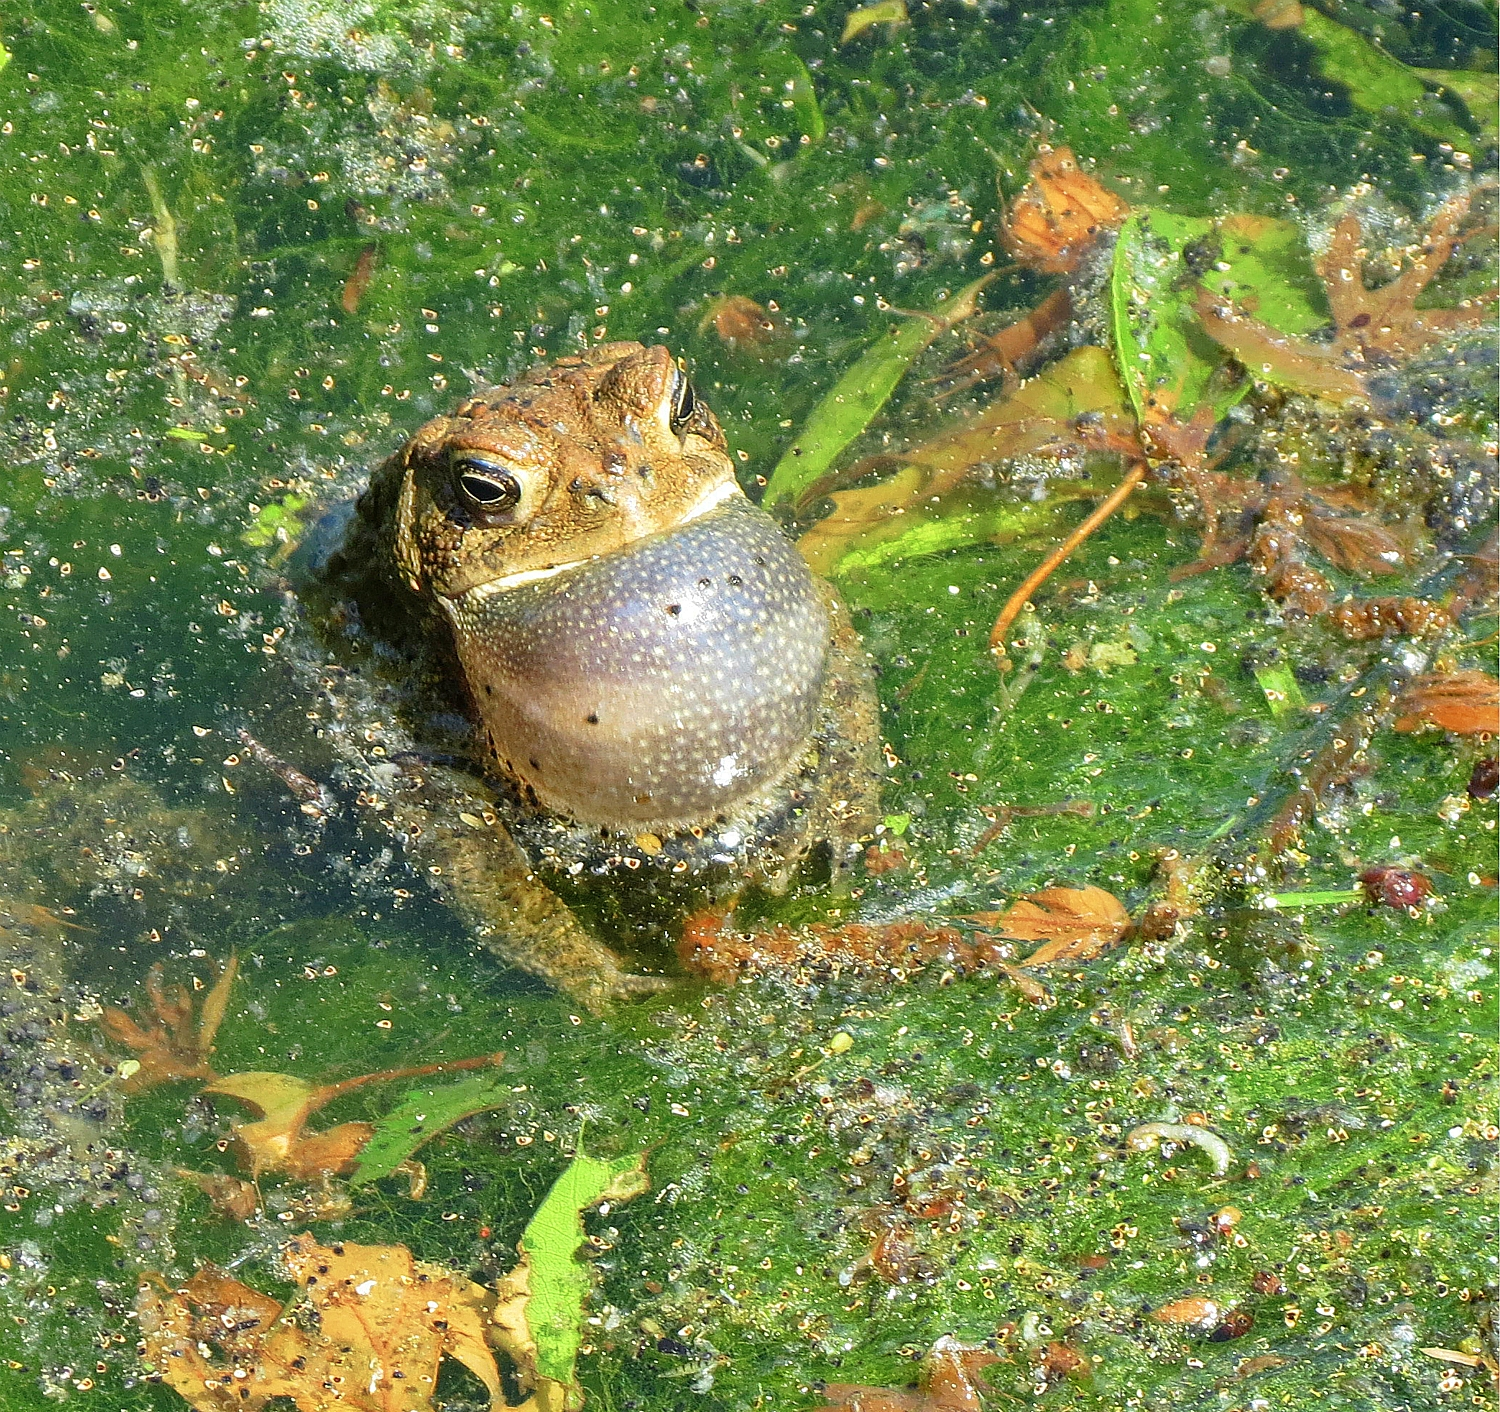 Helping california's legendary frog go the distance